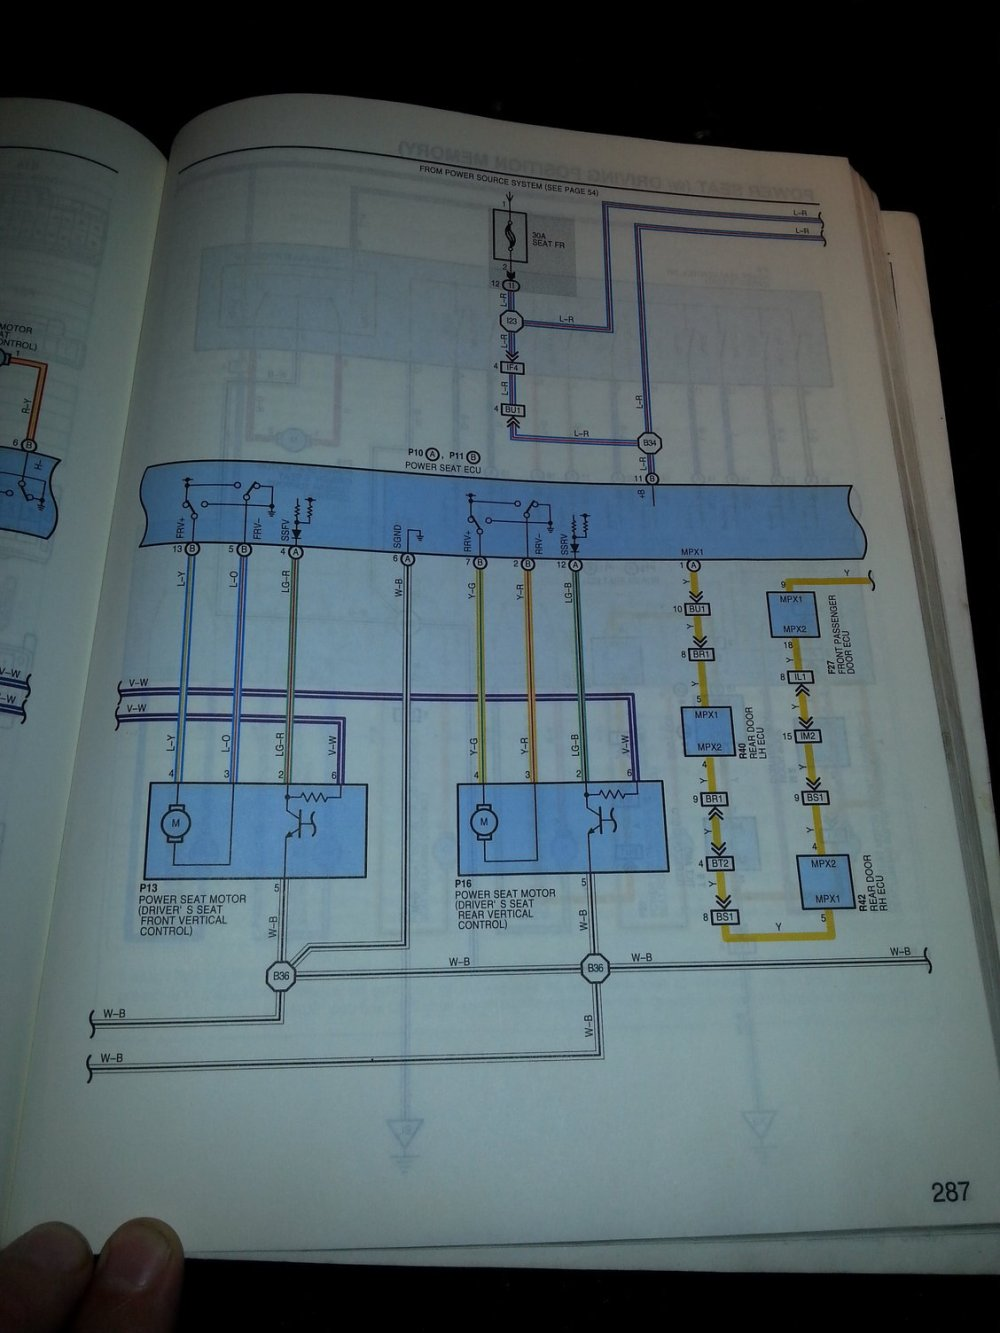 medium resolution of wiring diagram chart for 1999 ls400 should be similar to 1997 but verify